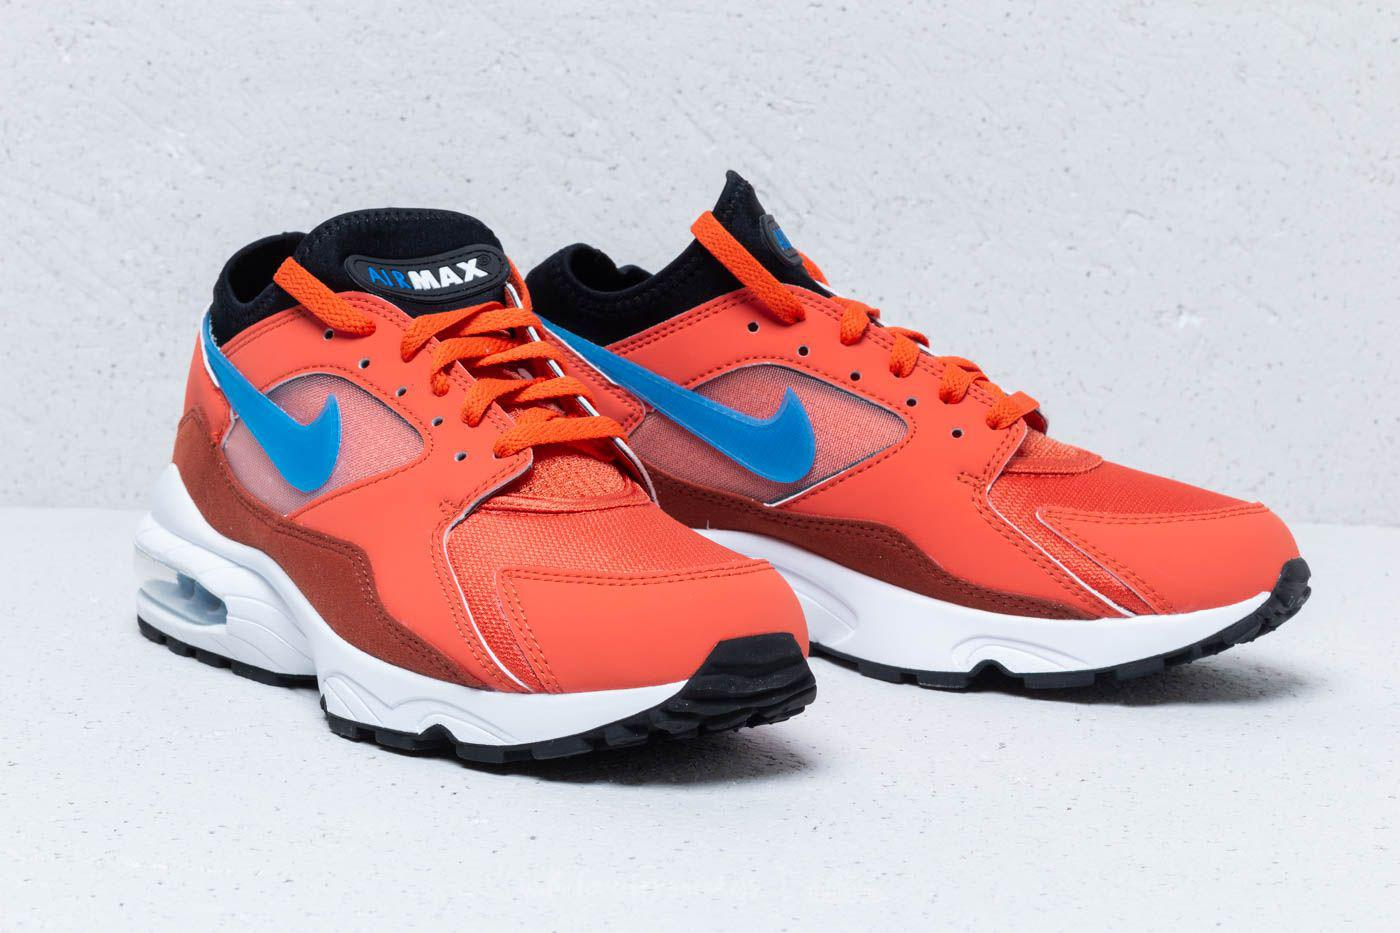 new arrival 94e2d 9fafd Lyst - Nike Air Max 93 Vintage Coral Blue Nebula in Blue for